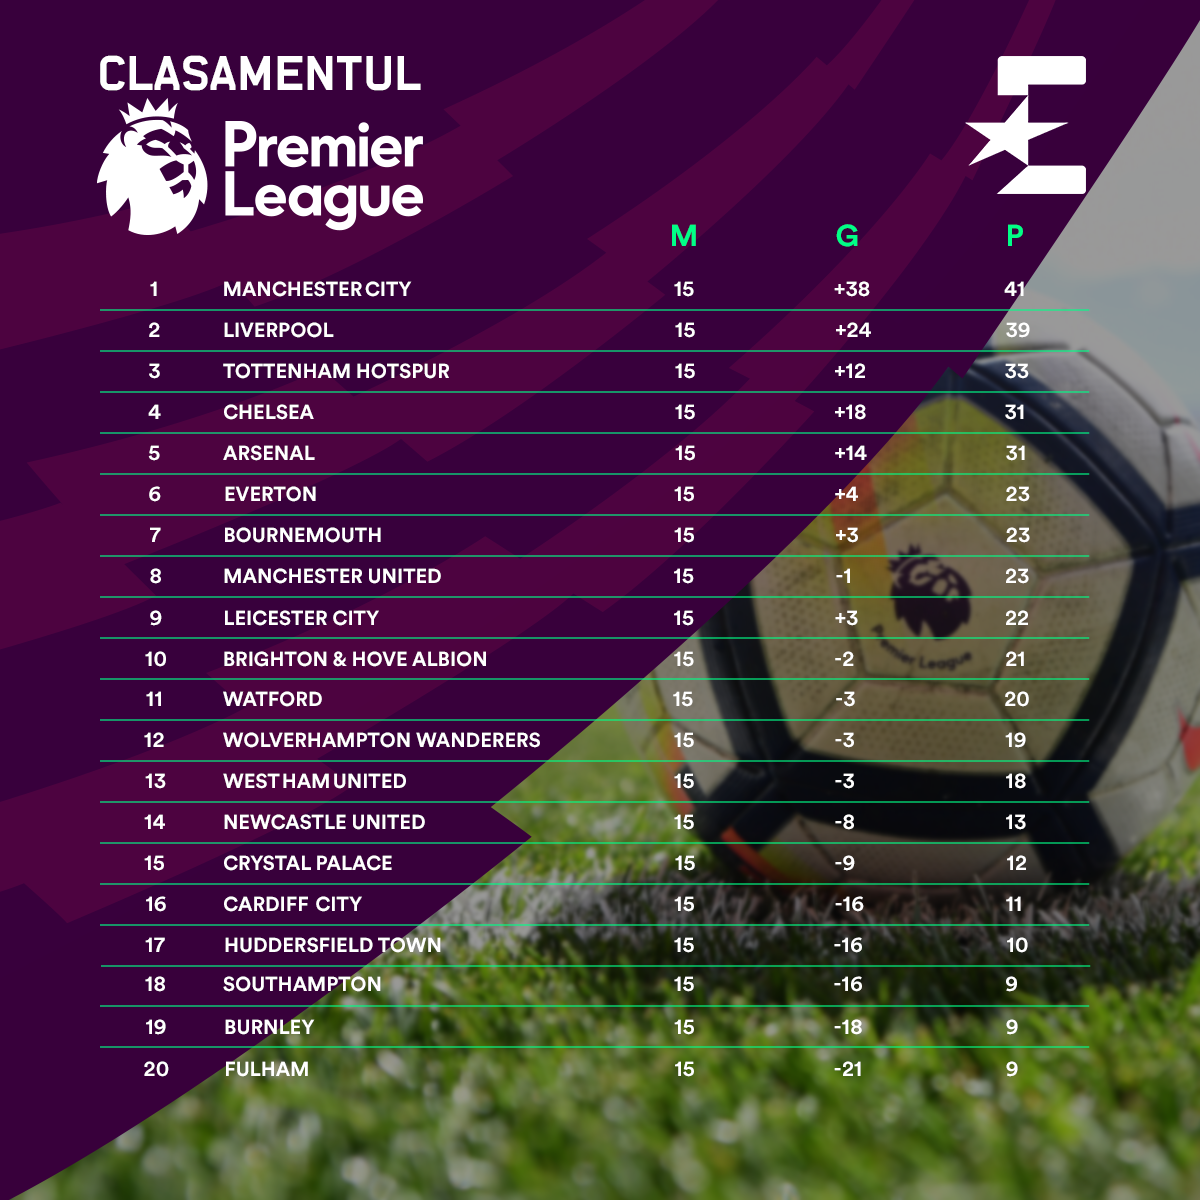 Premier League table after Round 15, 2018-2019